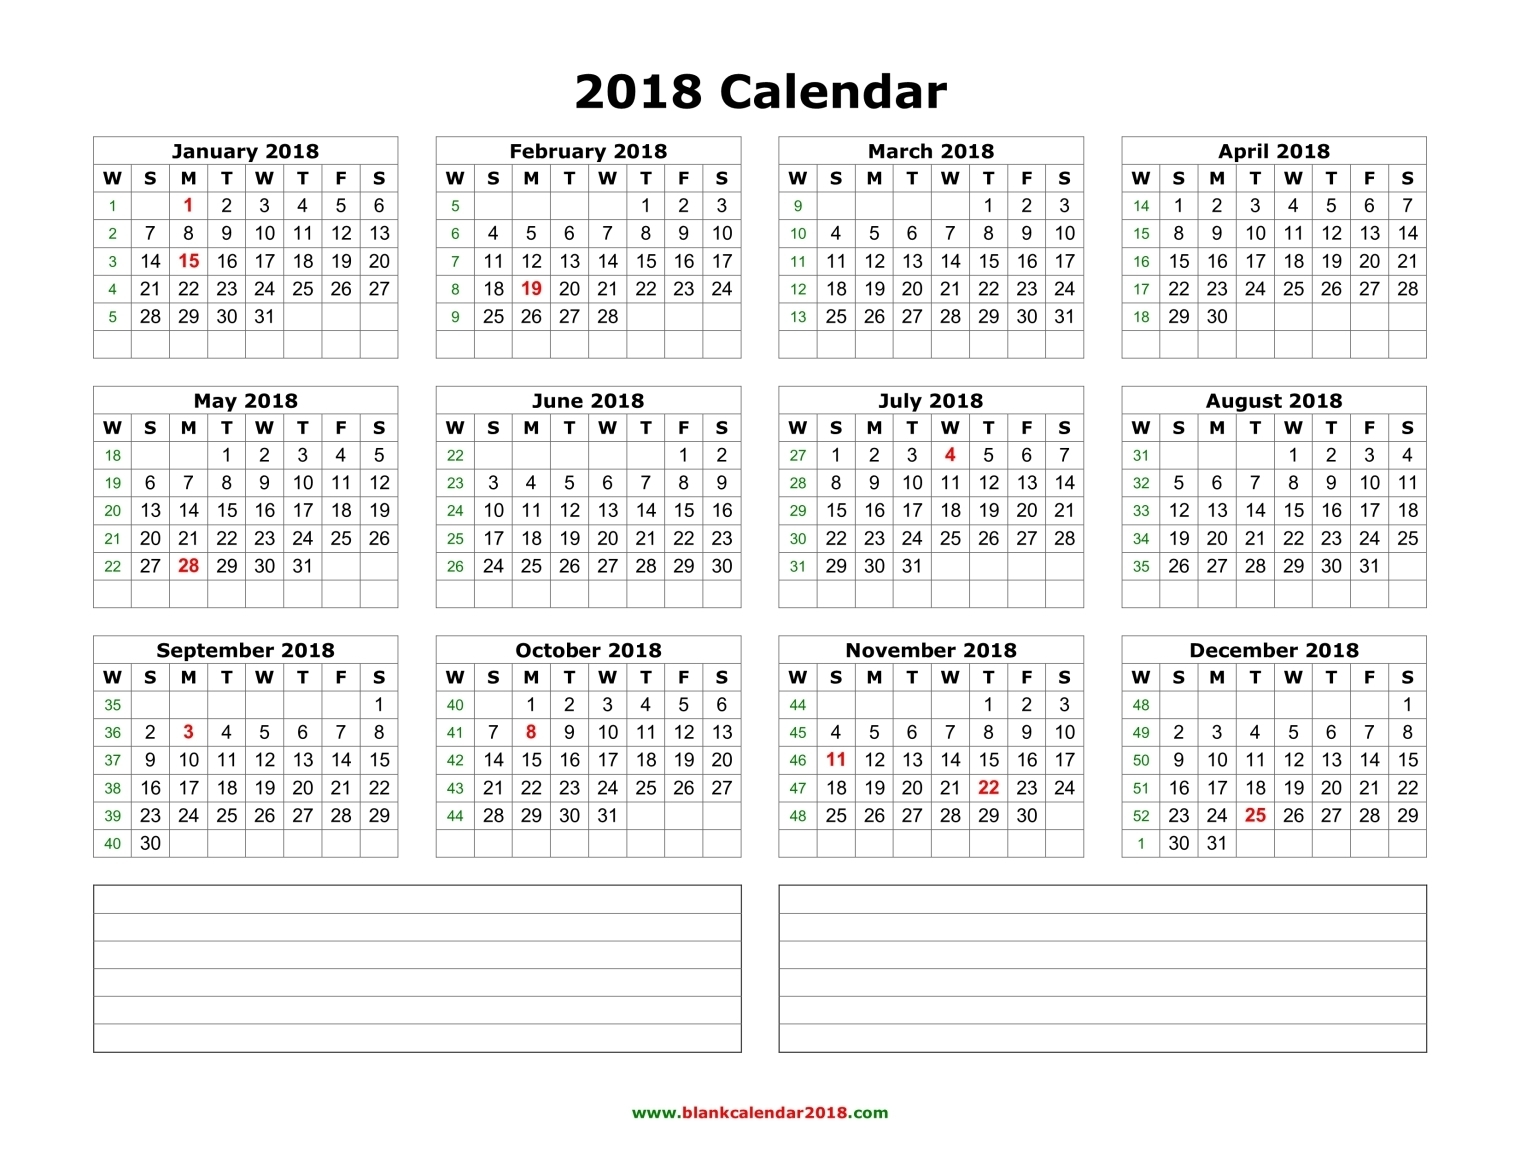 blank calendar 2018 with notes landscape